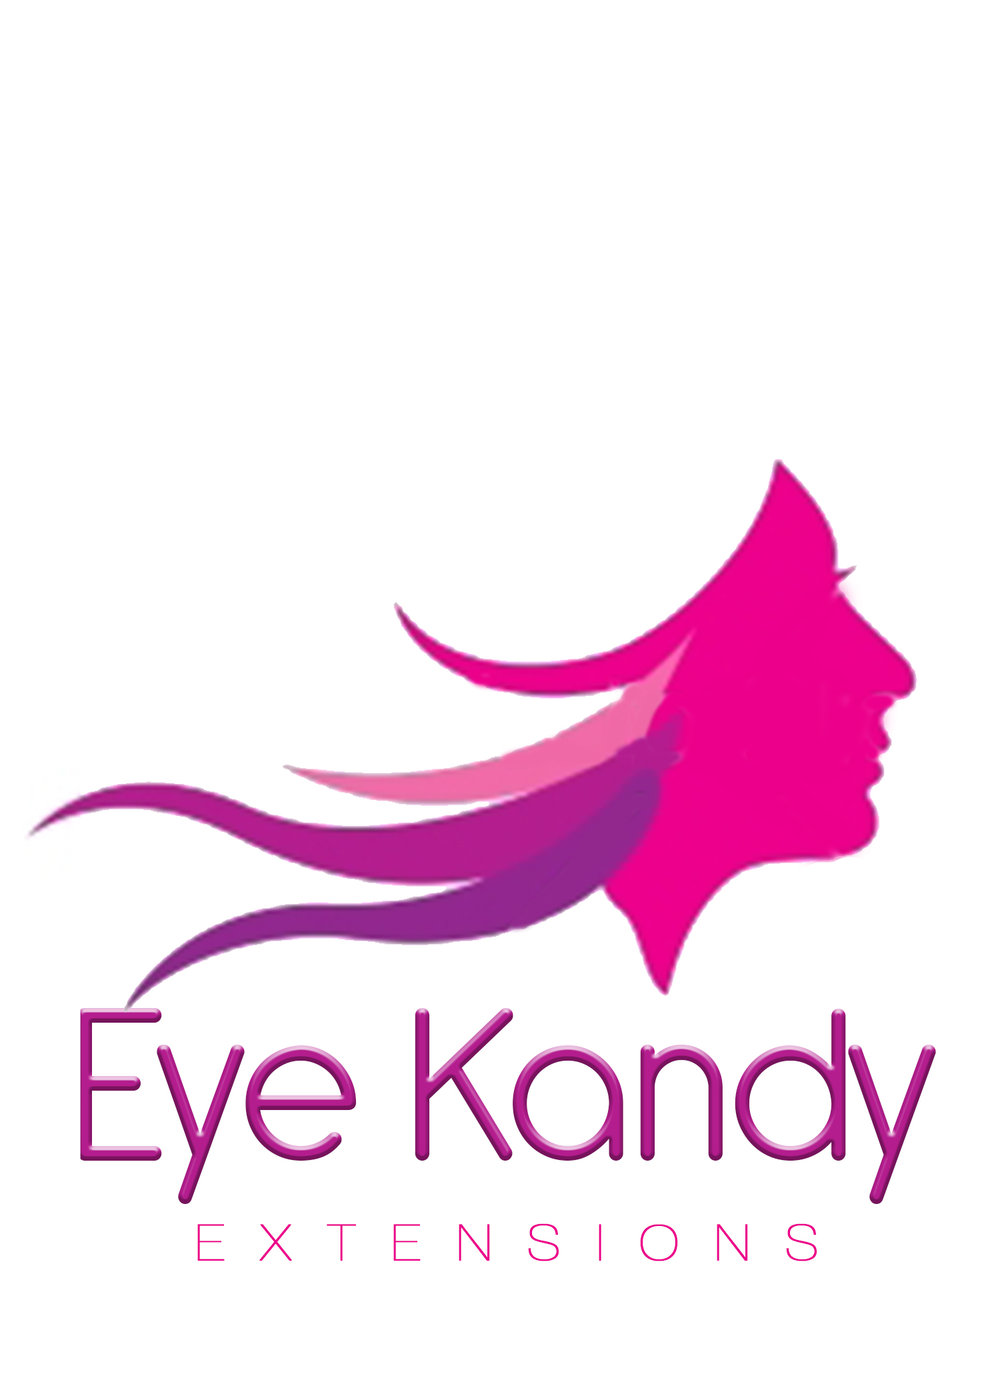 eye kandy logo5.jpg